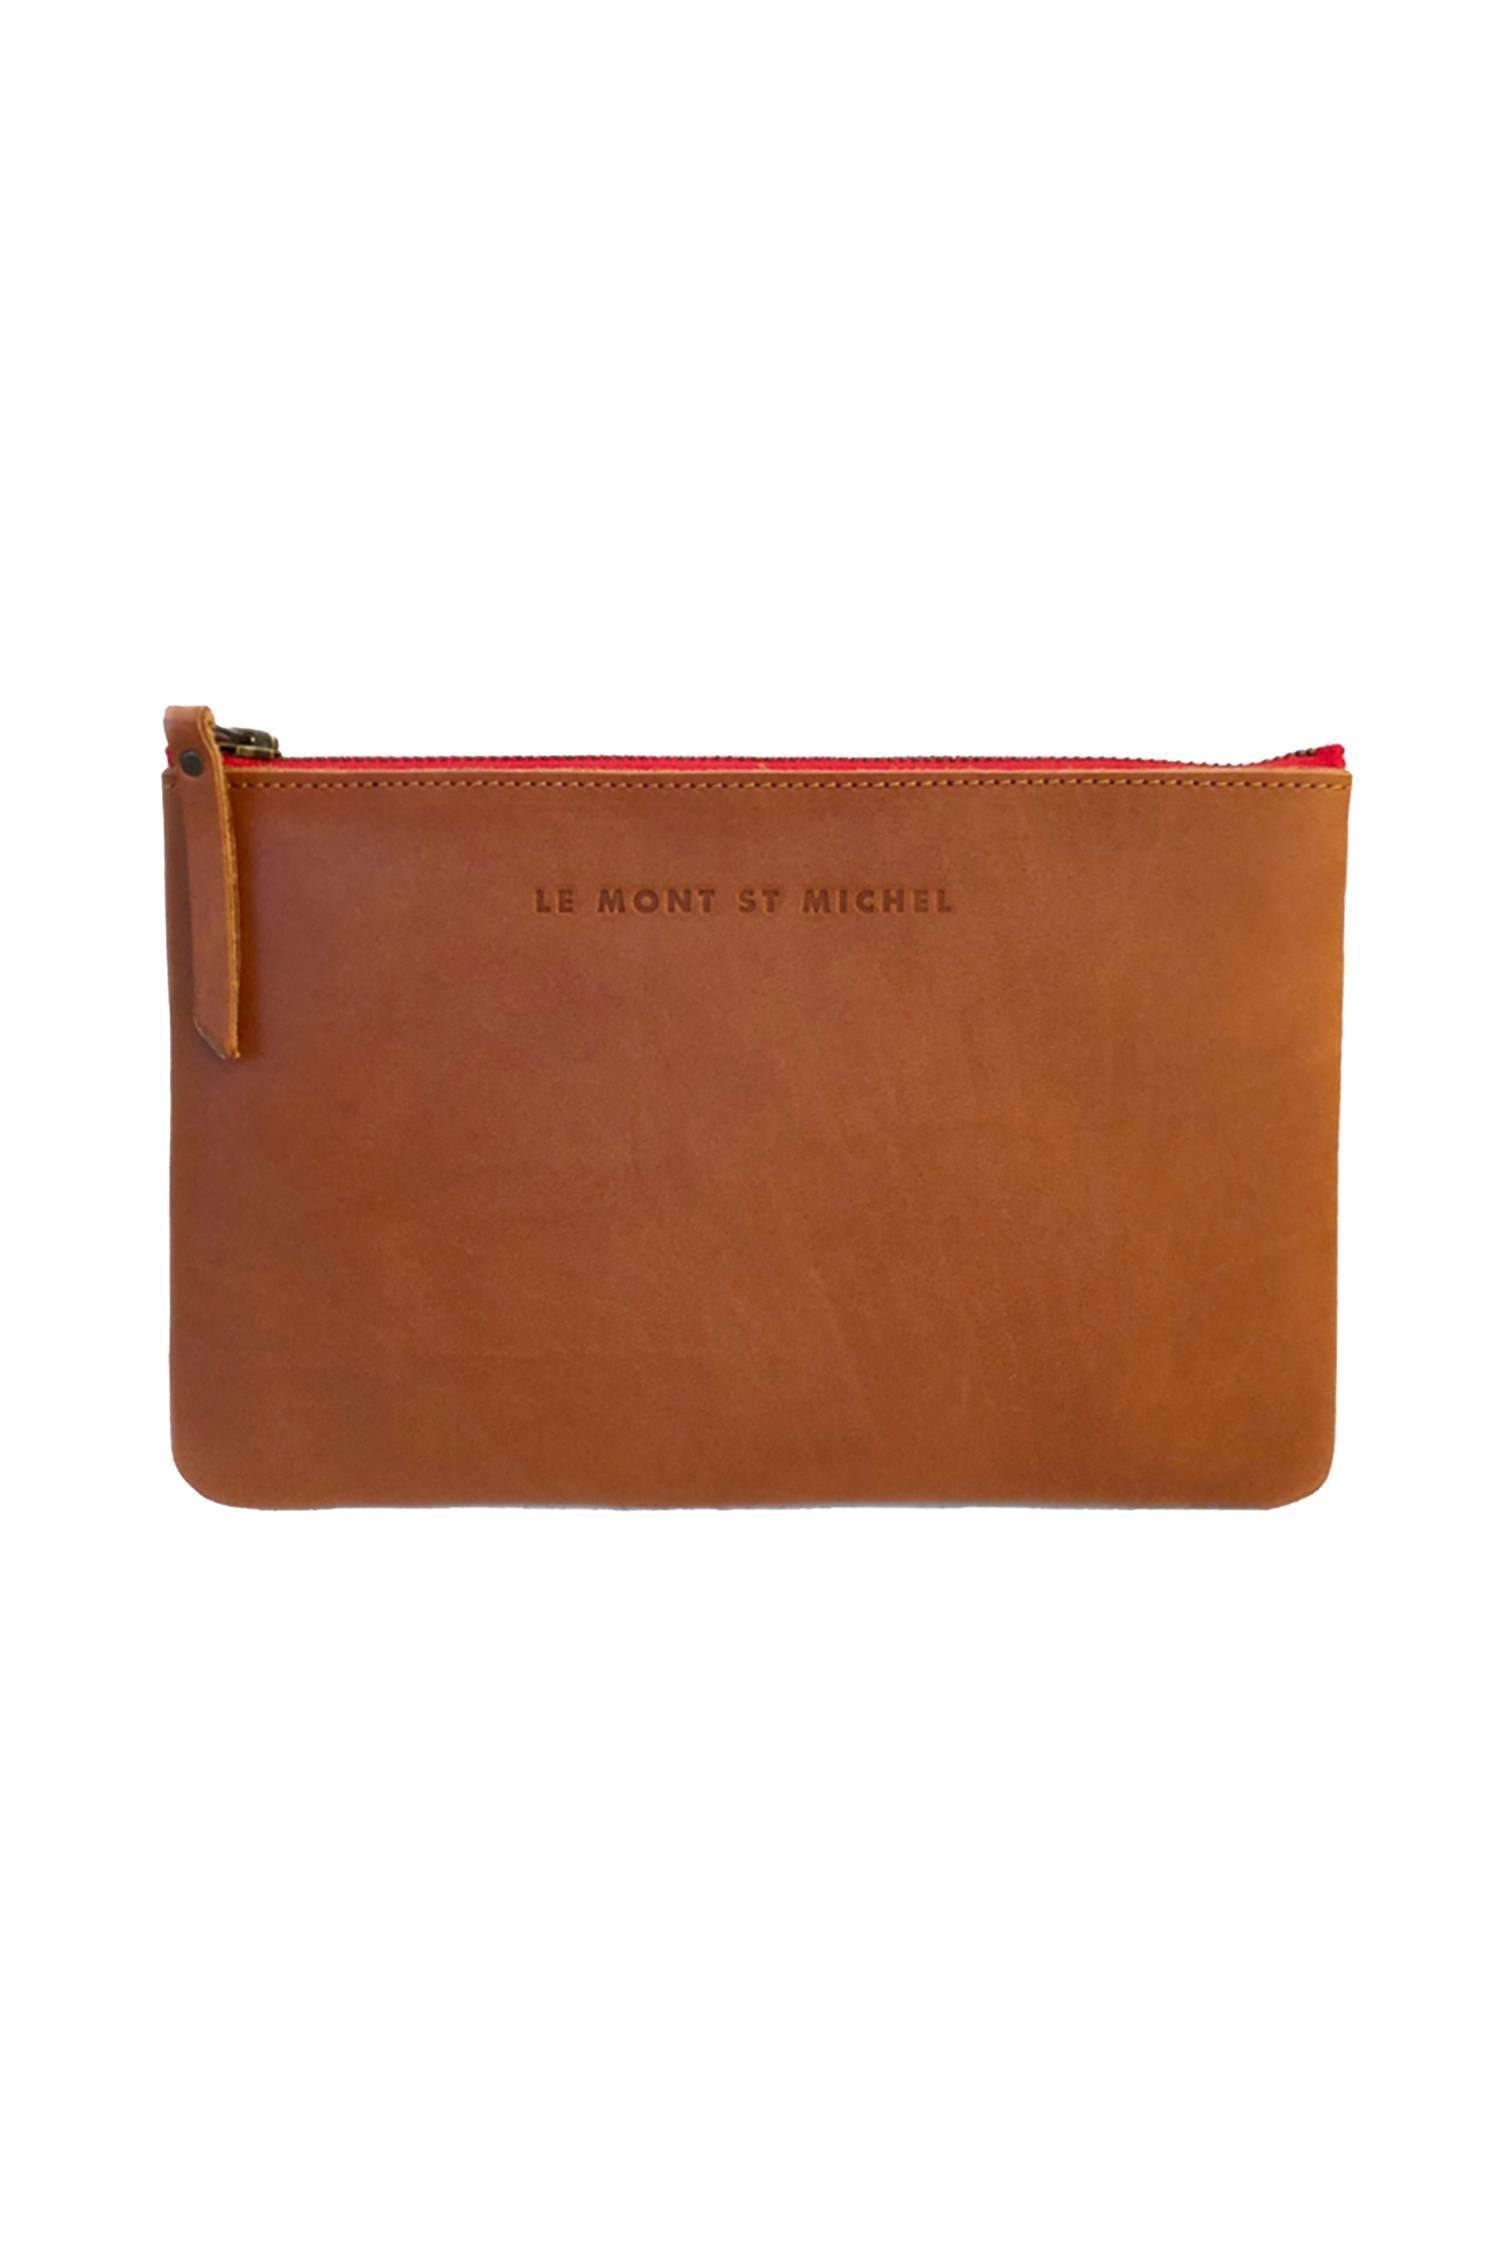 Leather zip case - small size